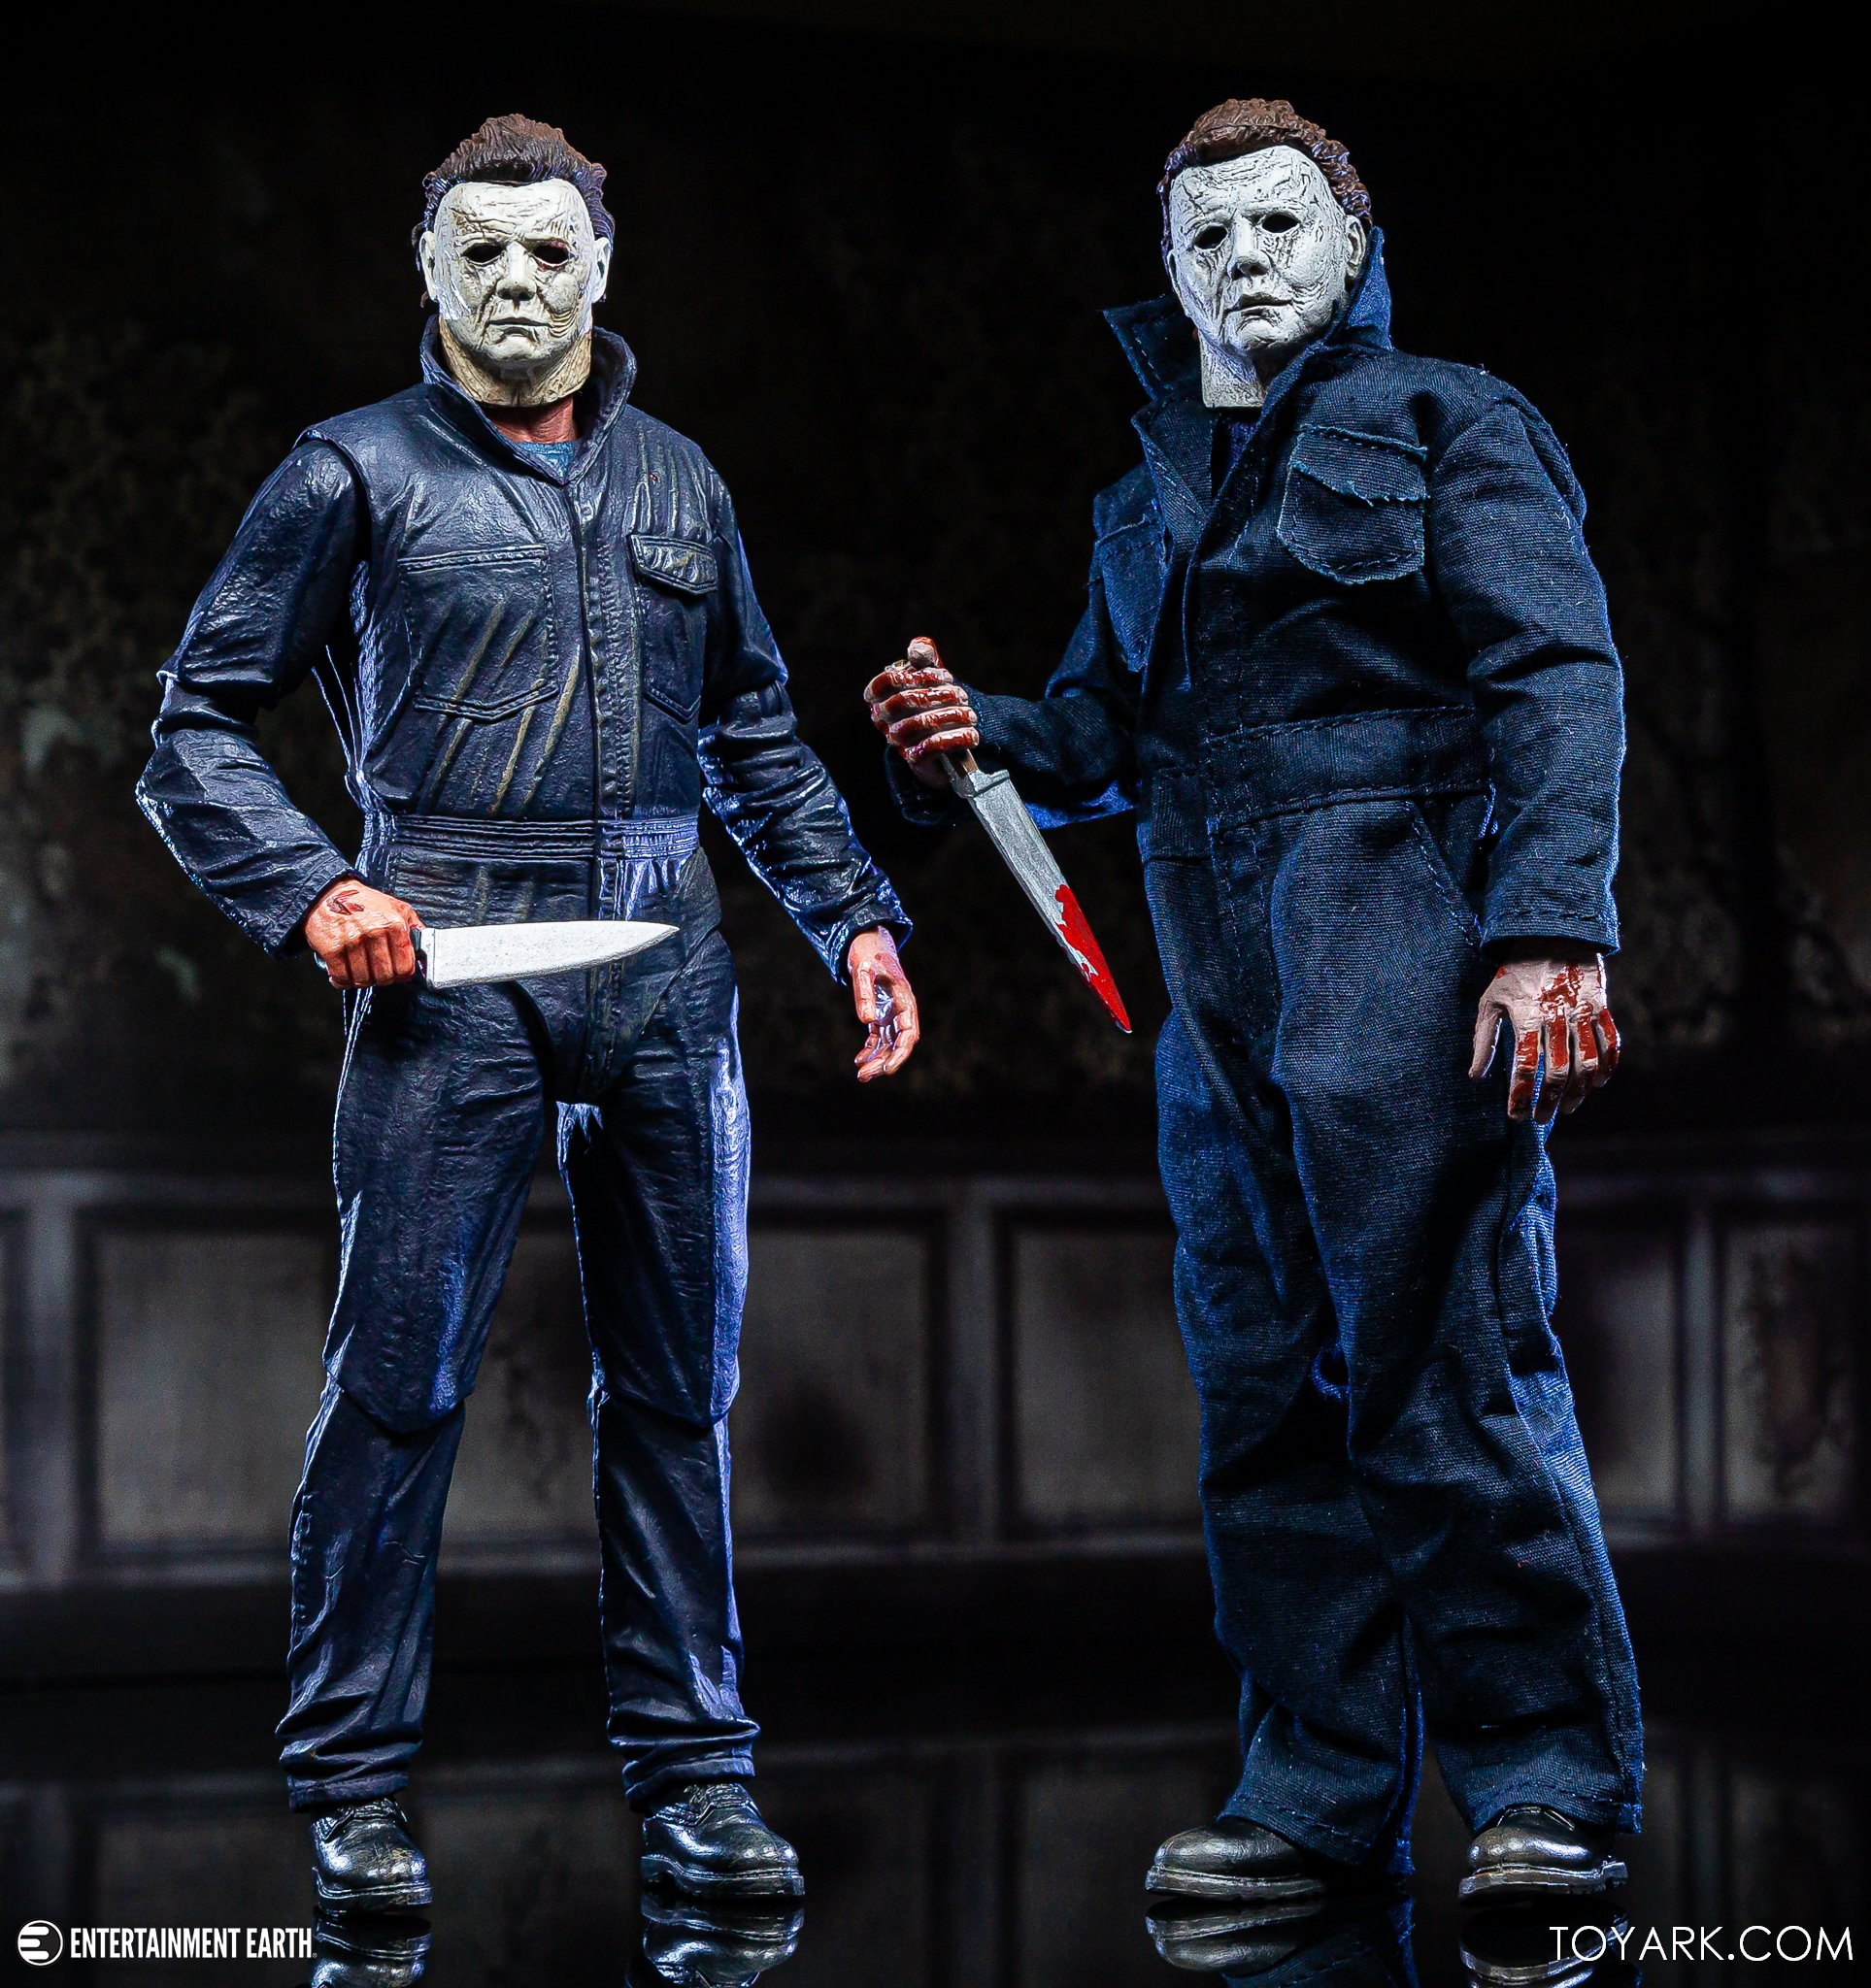 https://news.toyark.com/wp-content/uploads/sites/4/2020/01/Halloween-2018-Retro-Michael-Myers-022.jpg